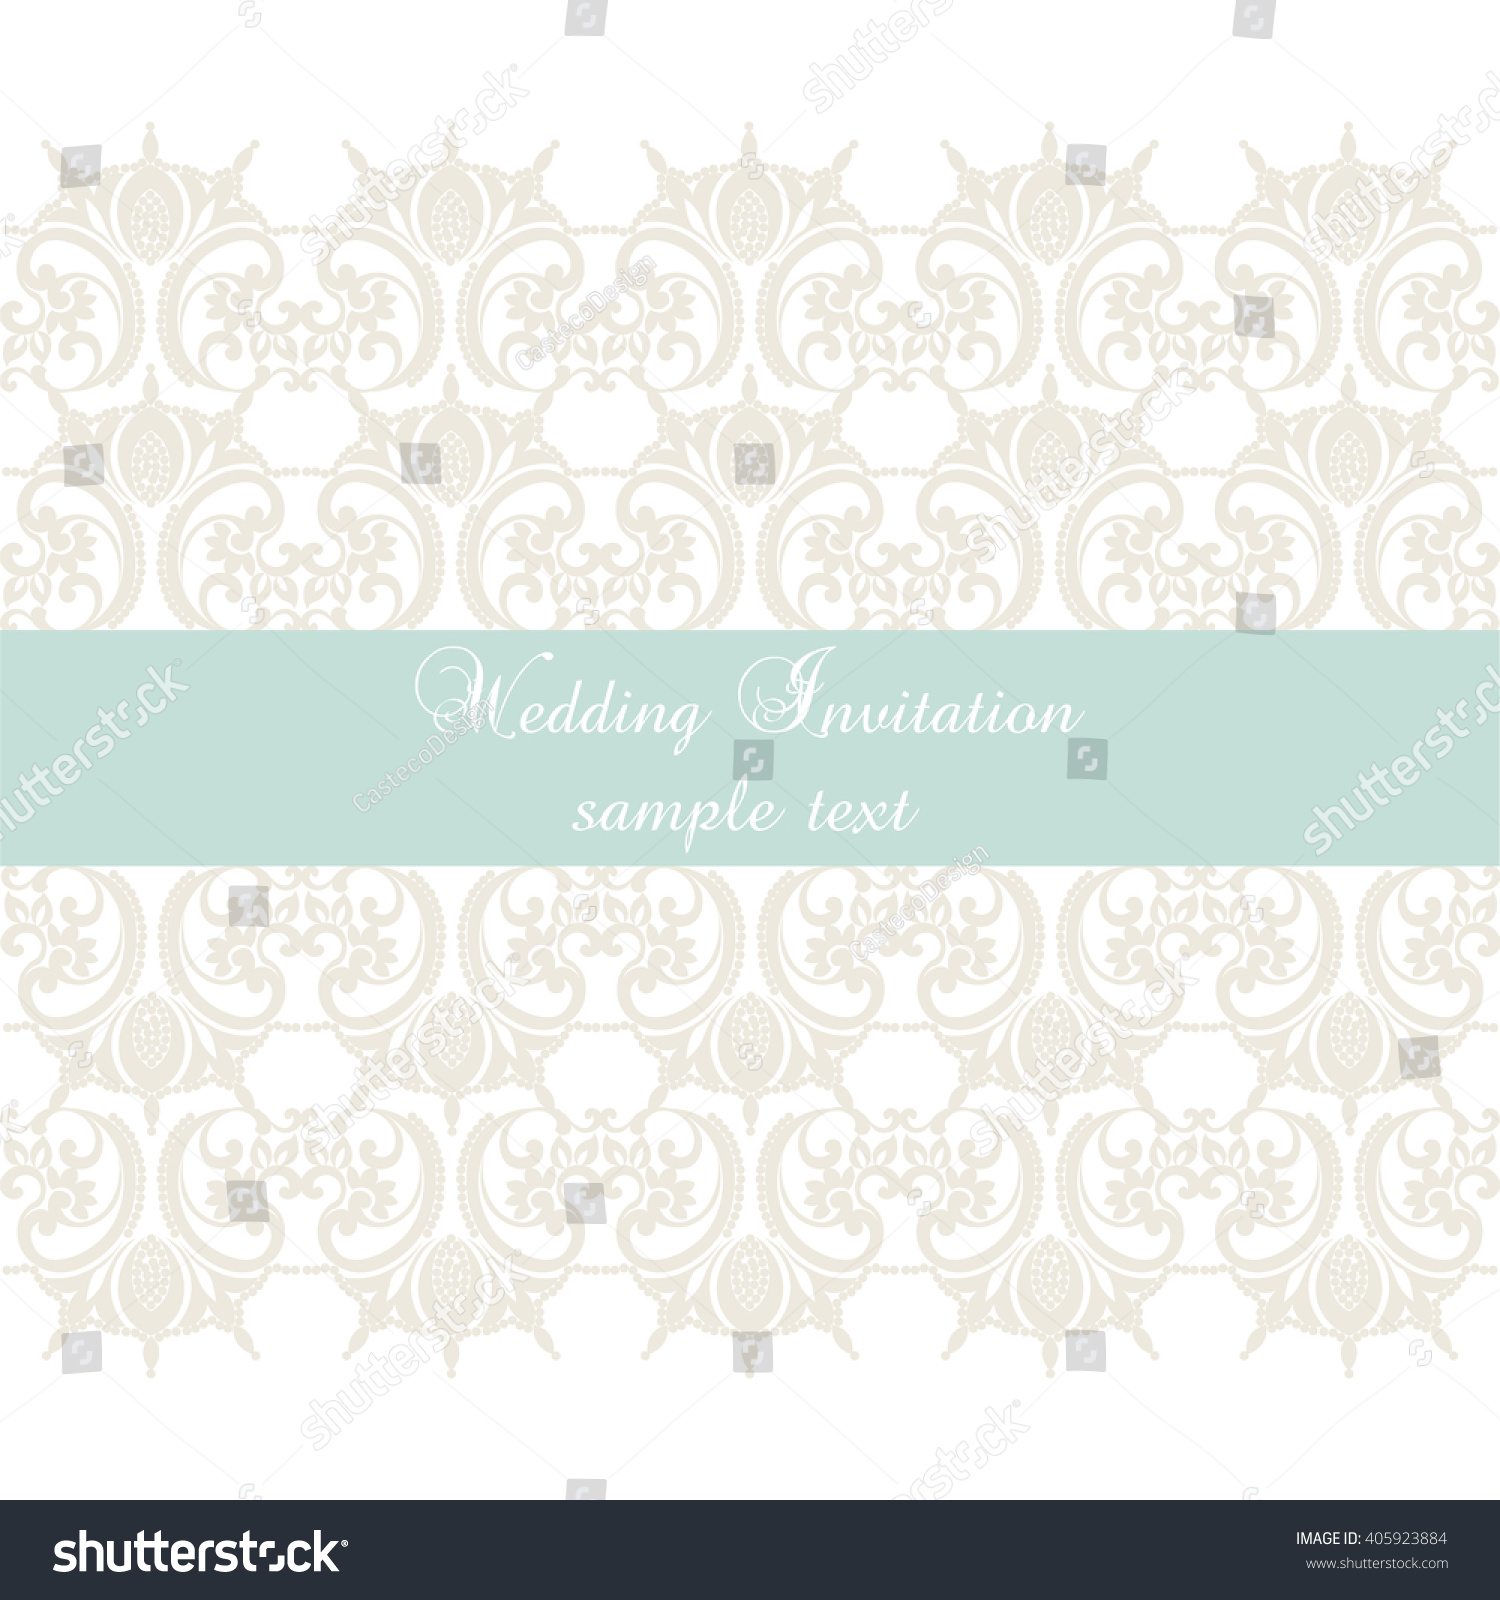 Crochet Wedding Invitations: Vector Lace Crochet Card Background Wedding Stock Vector